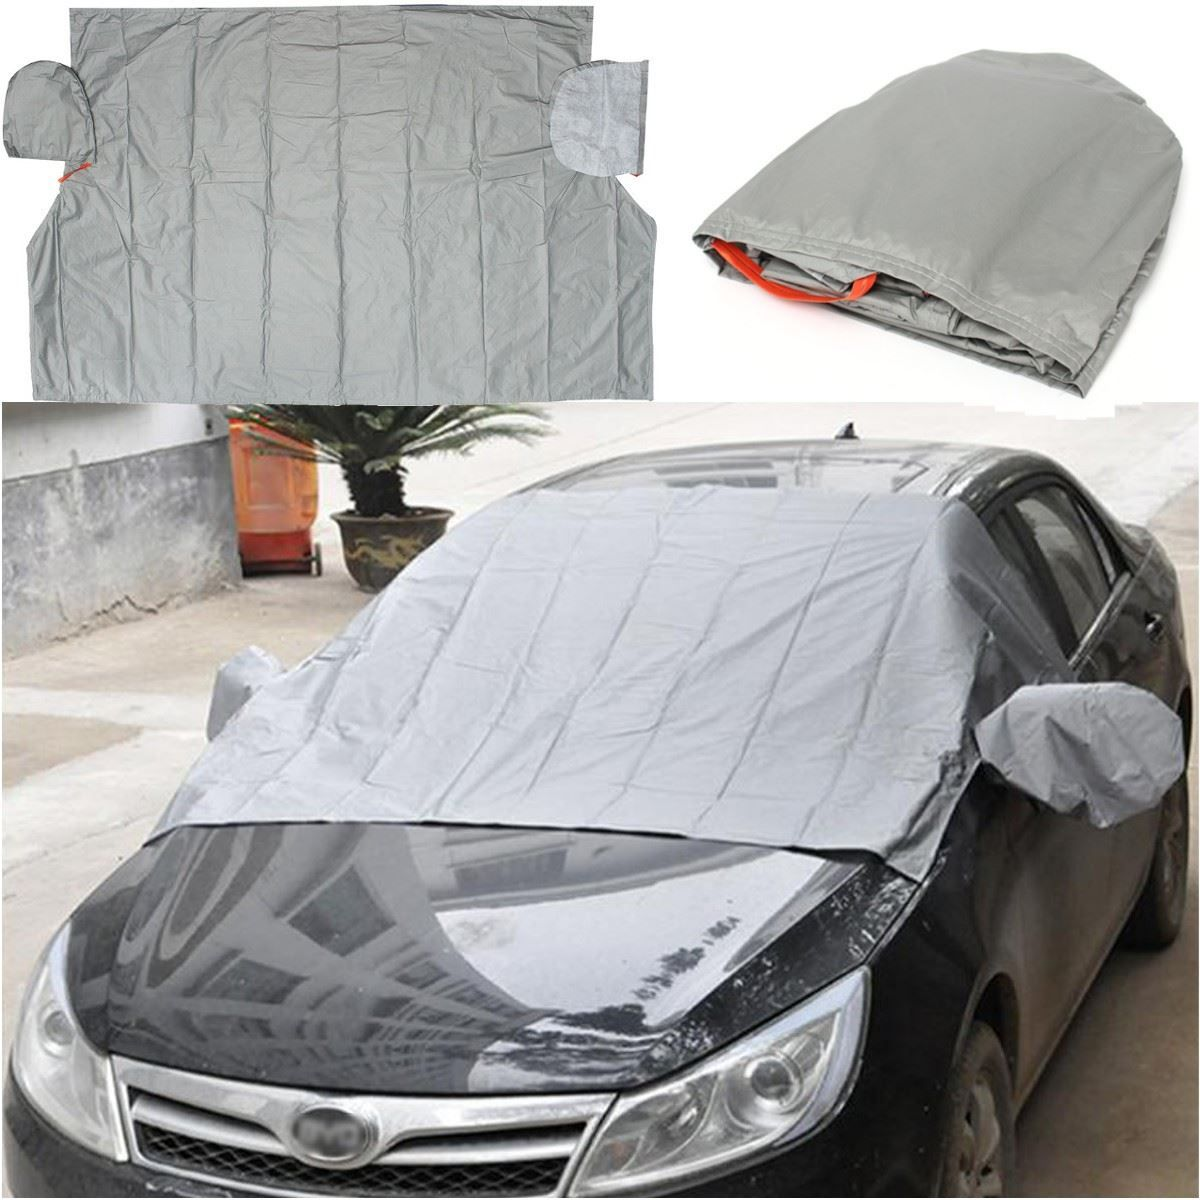 240x140cm Car Auto Front Windscreen Cover Generic Sun Shade PEVA Rain Frost Sunshade Dust Hook Up Shield